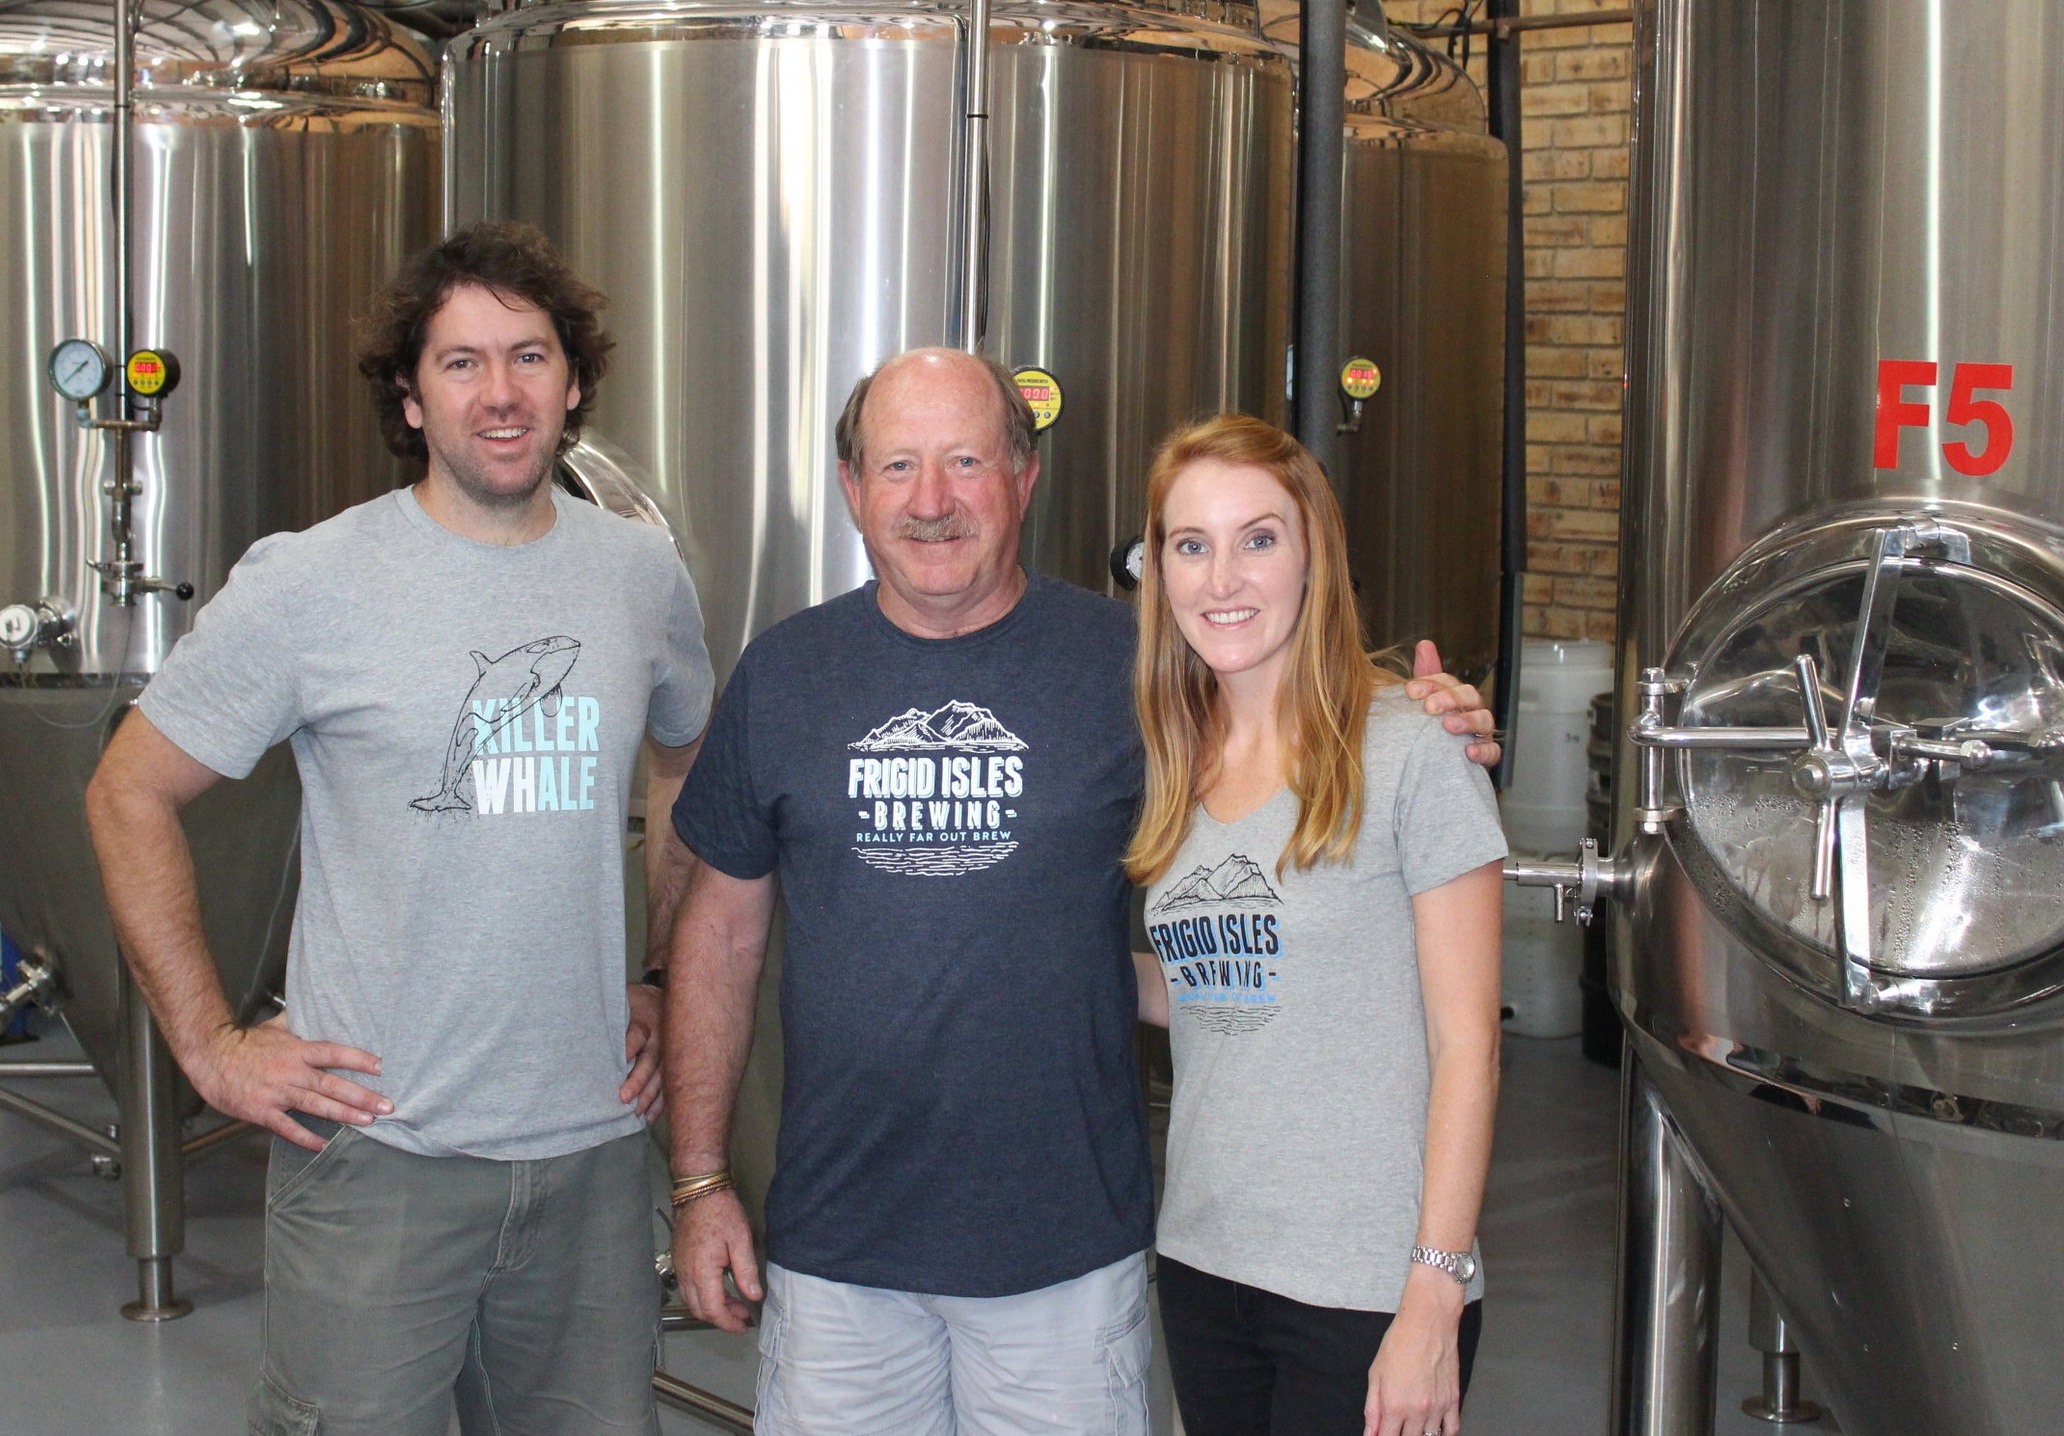 Nico, Mac and Kate - the Frigid Isles Brewing team.